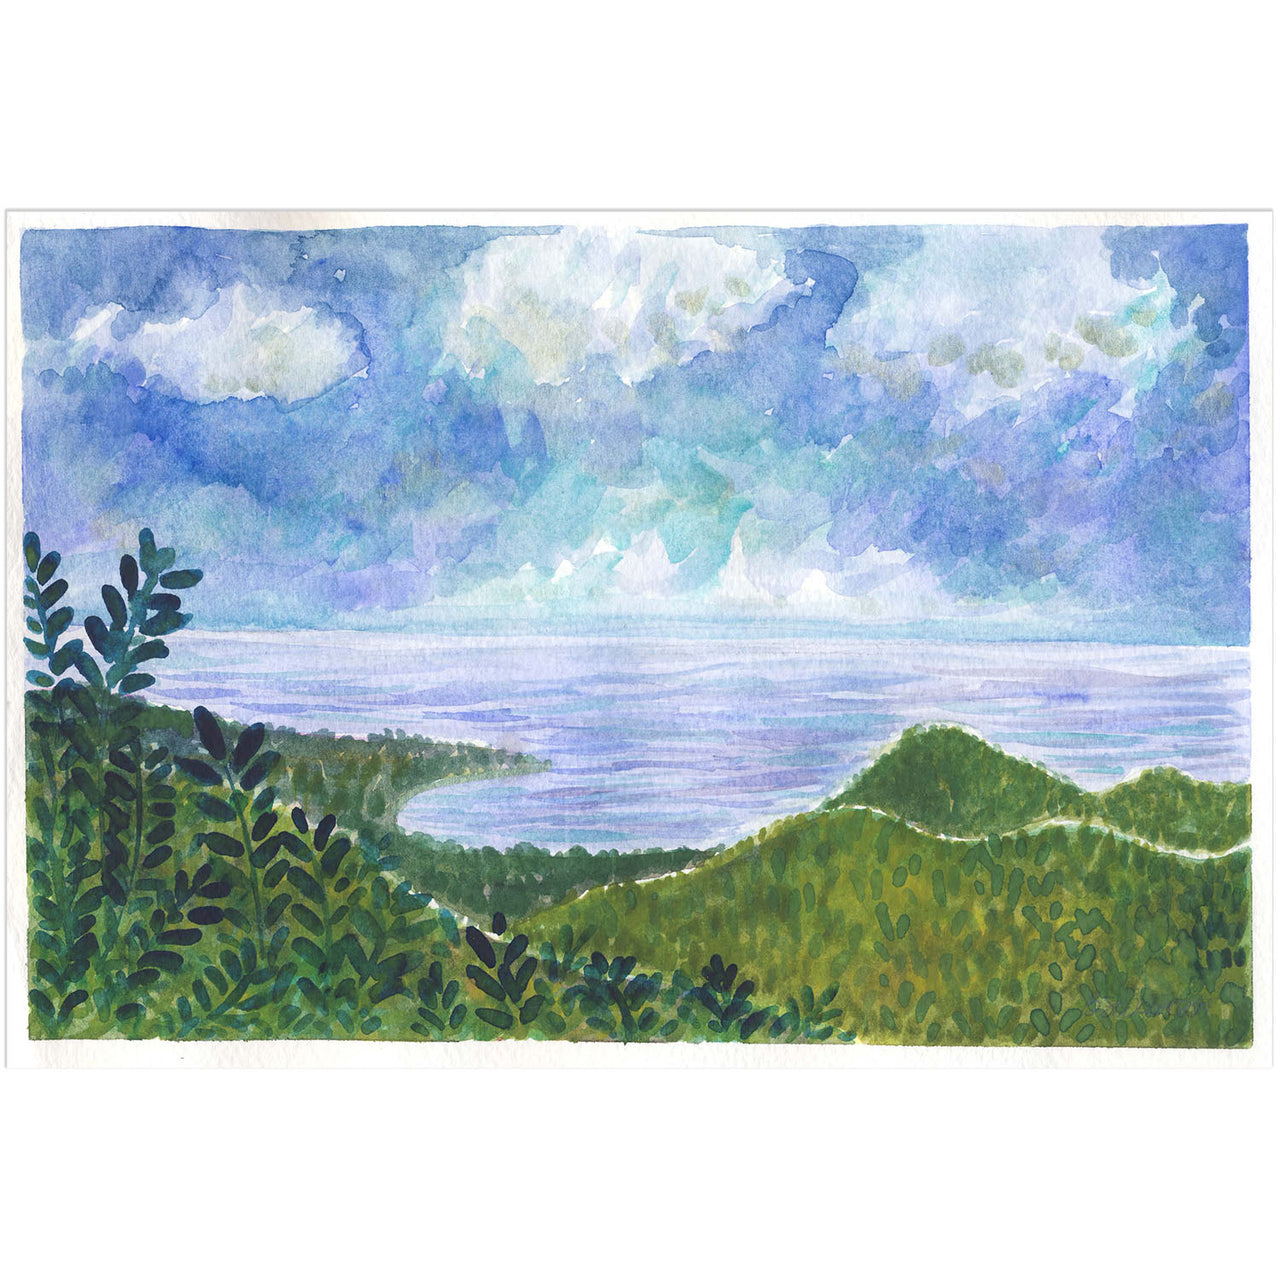 Guam landscape original watercolor painting by Yardia